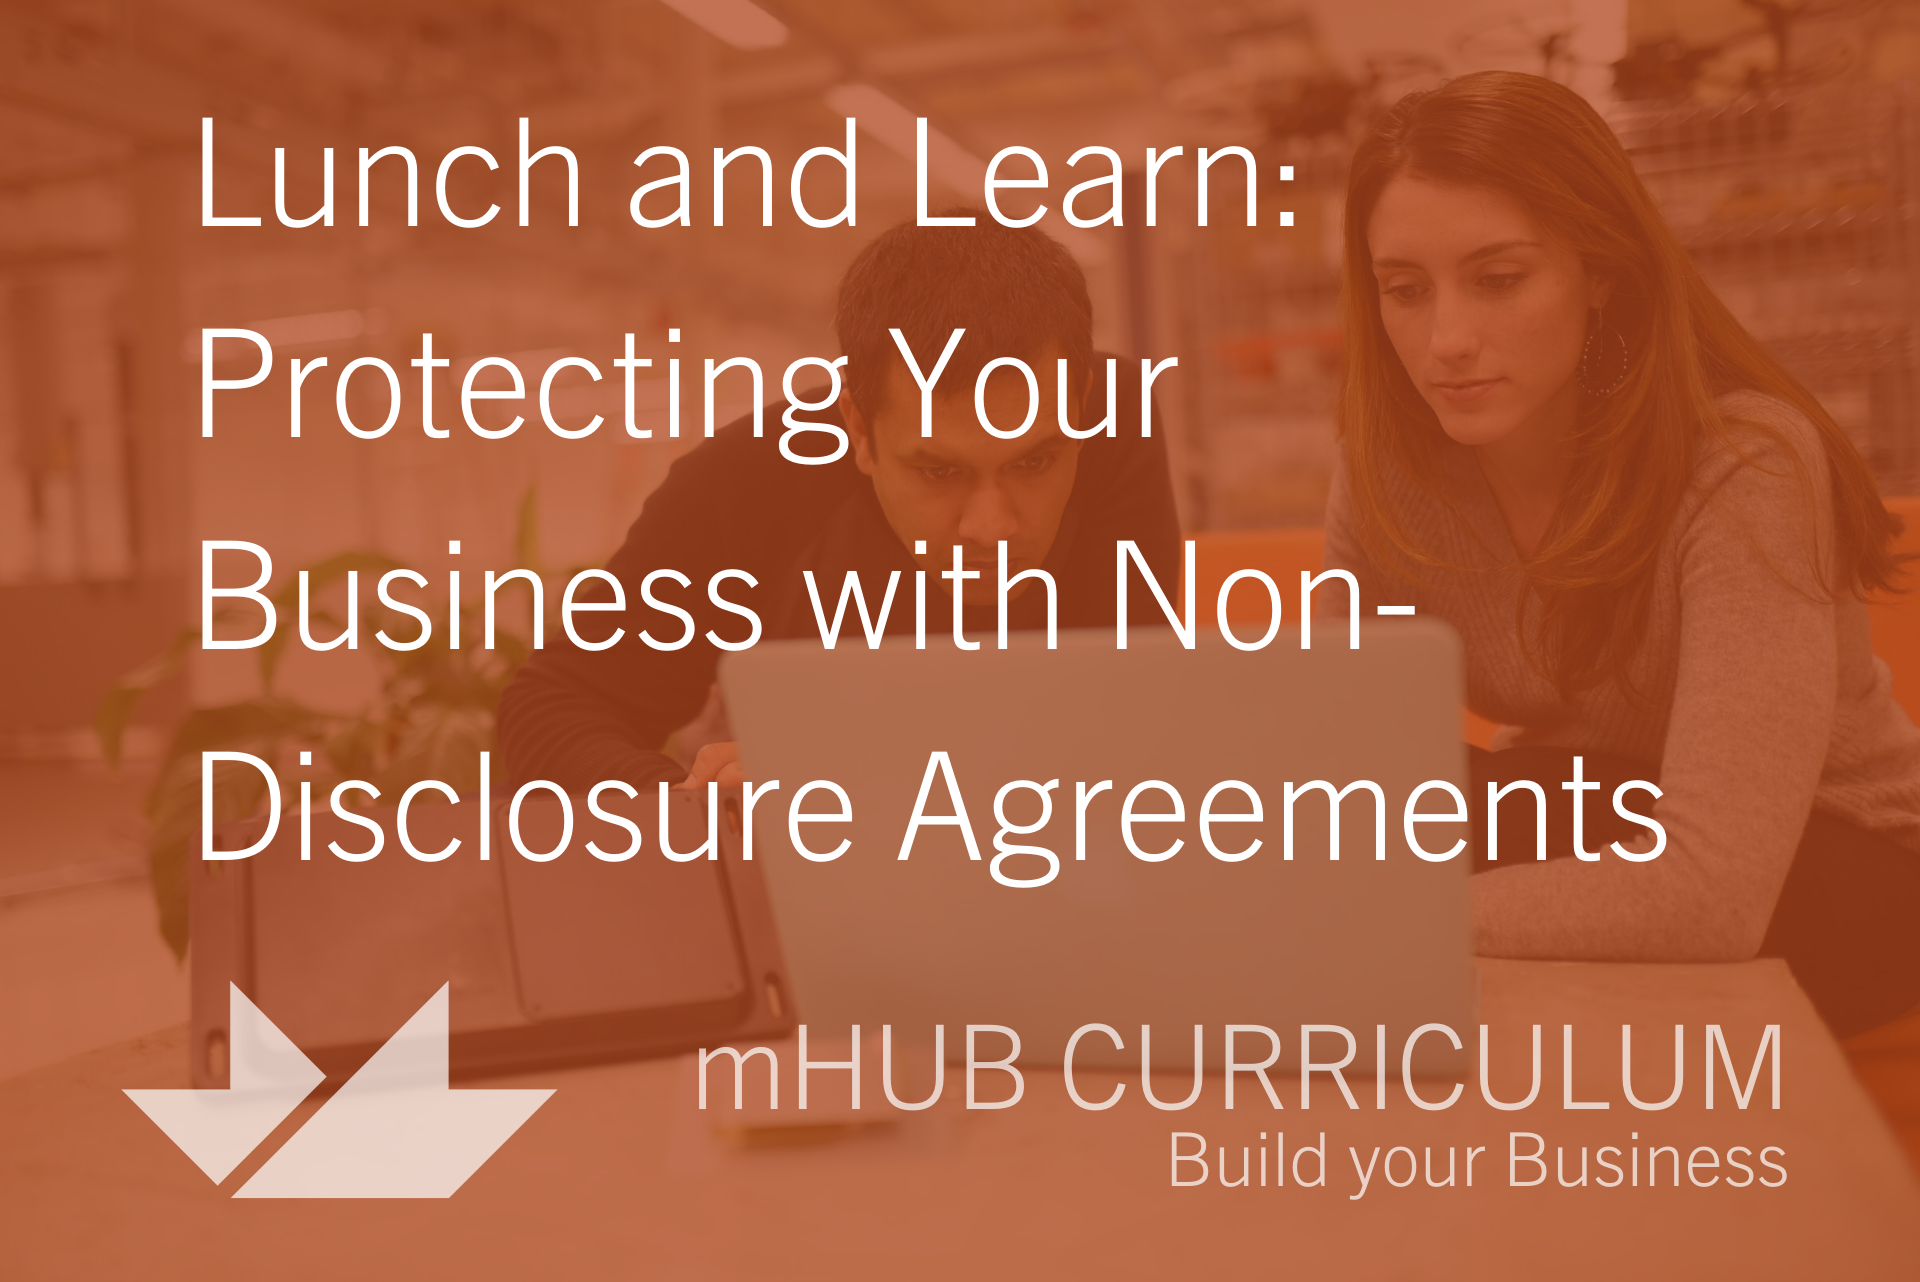 Lunch and Learn: Protecting Your Business with Non-Disclosure Agreements